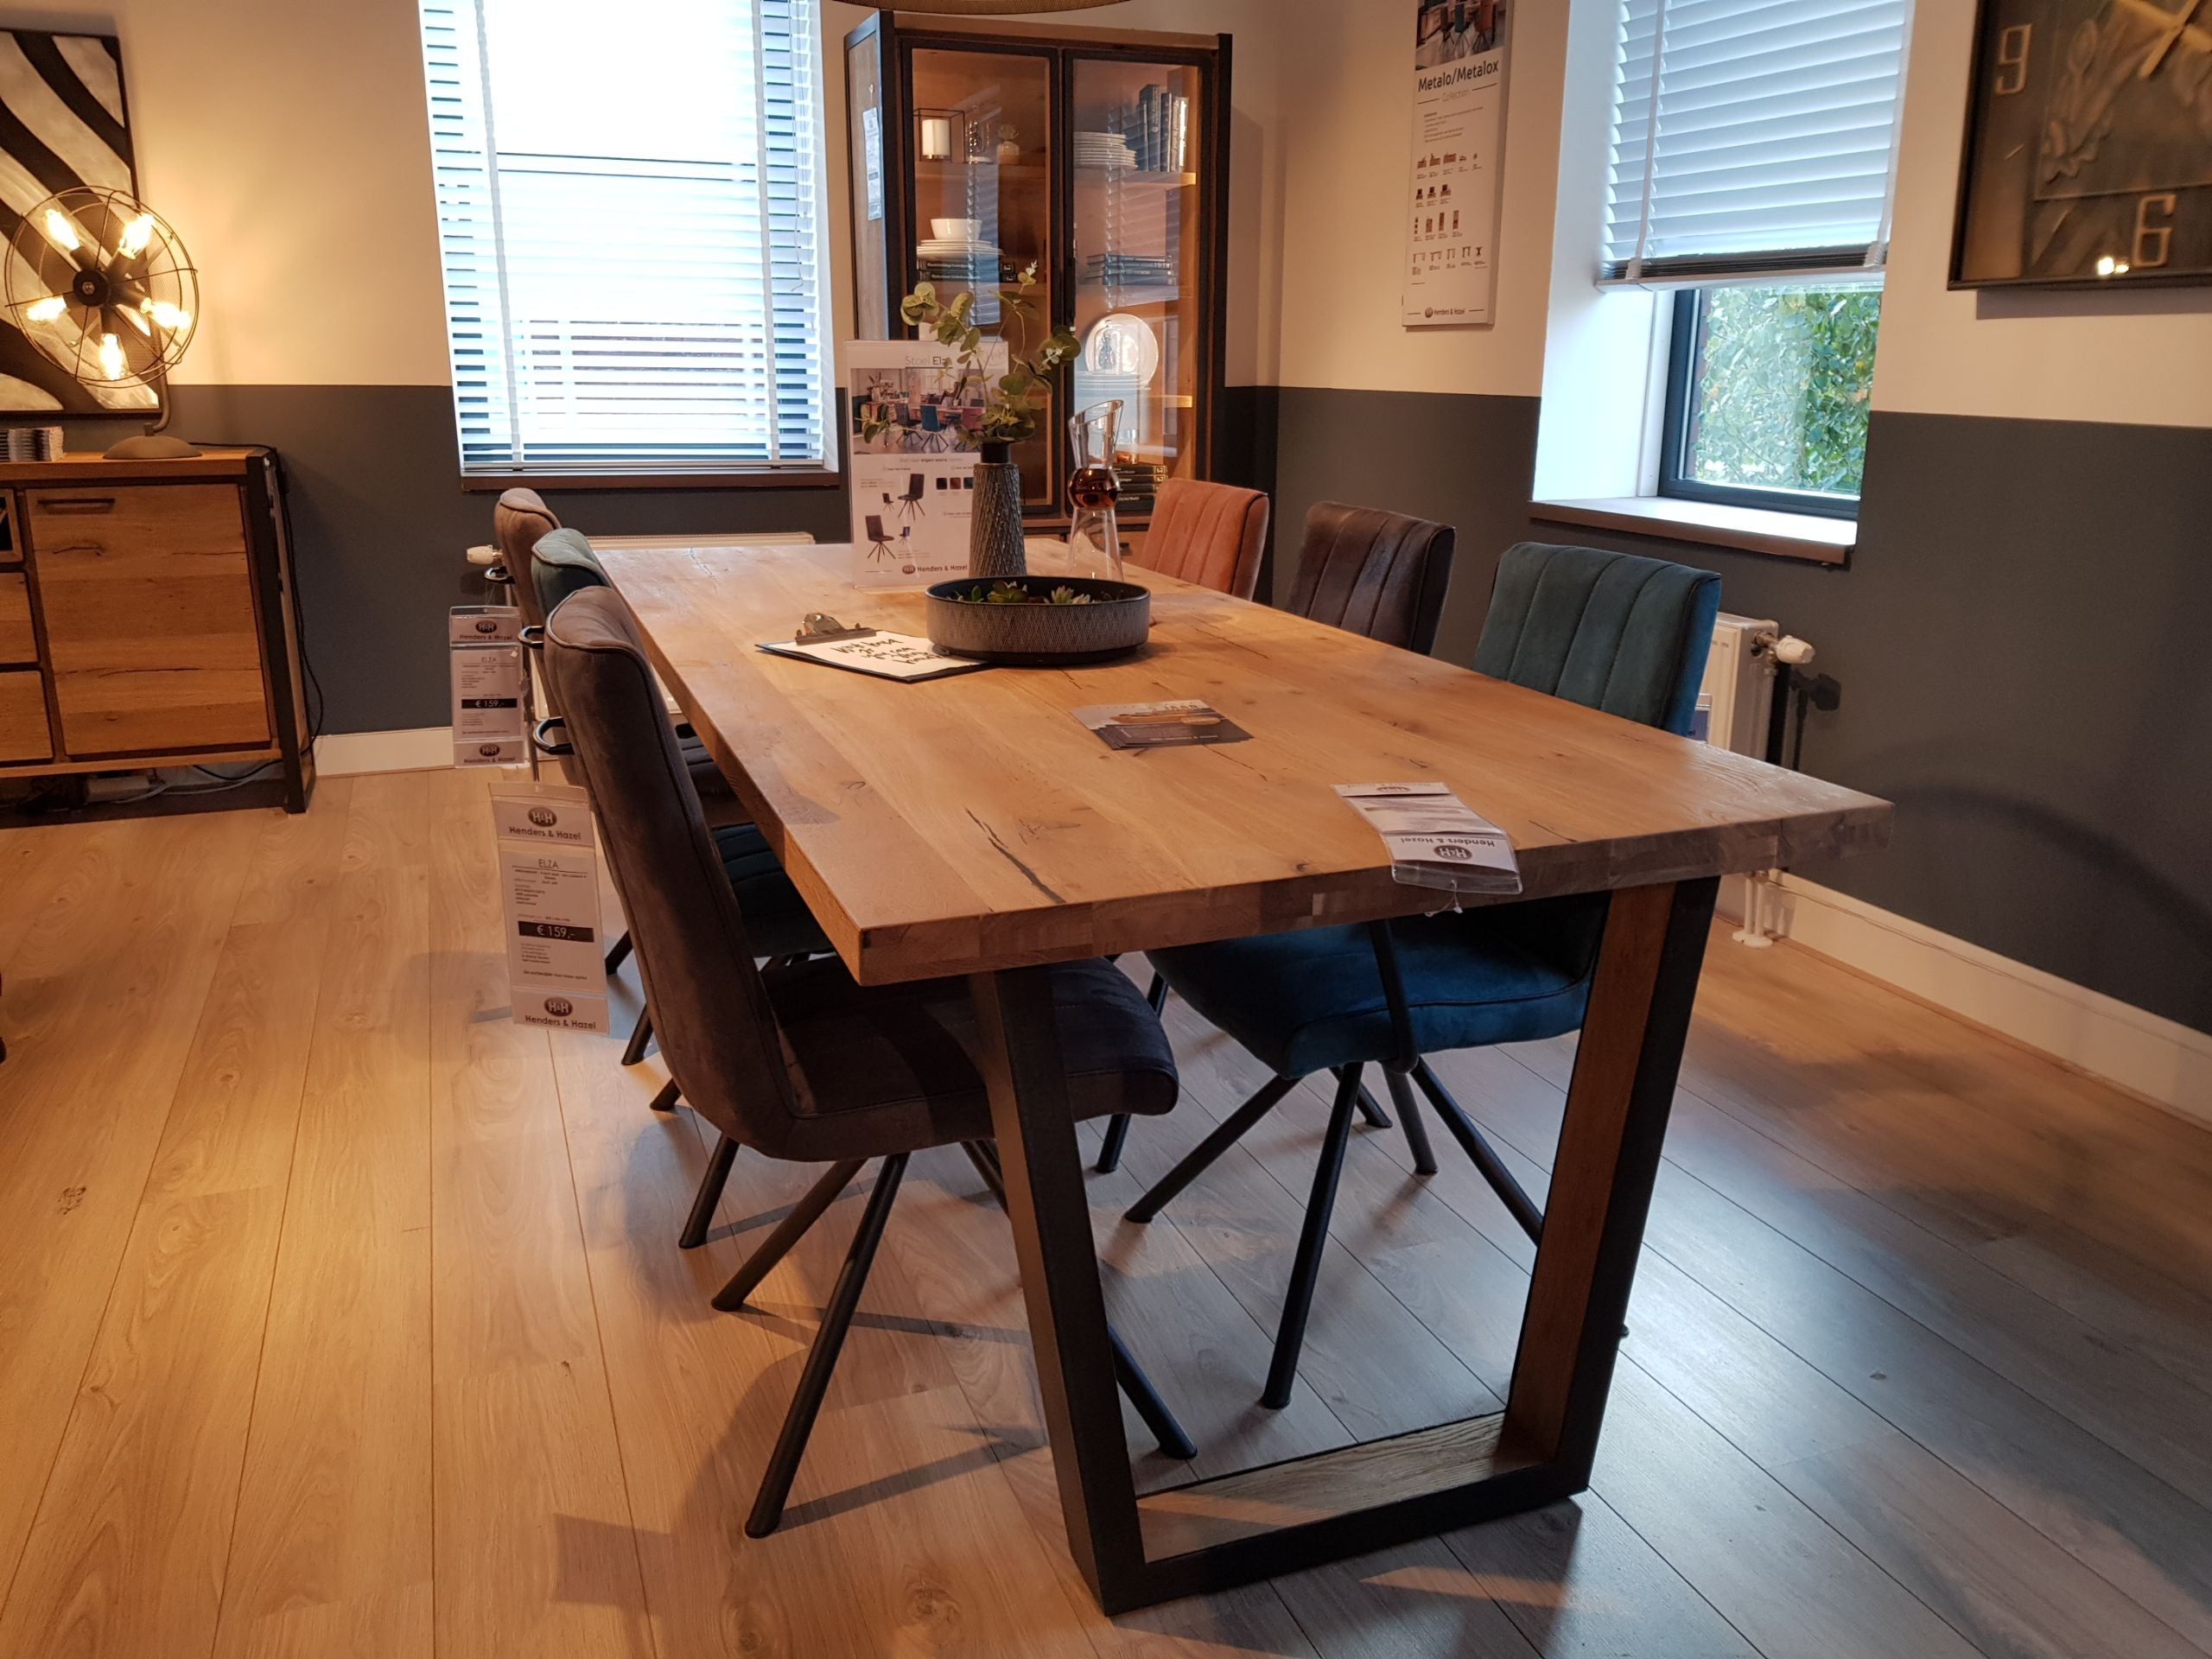 Habufa Metalox Fixed Top Oak Dining Tables-[Habufa Detroit]-[Furniture Village Detroit]-170 cms-U shape metal legs-Wavy edge-Against The Grain Furniture